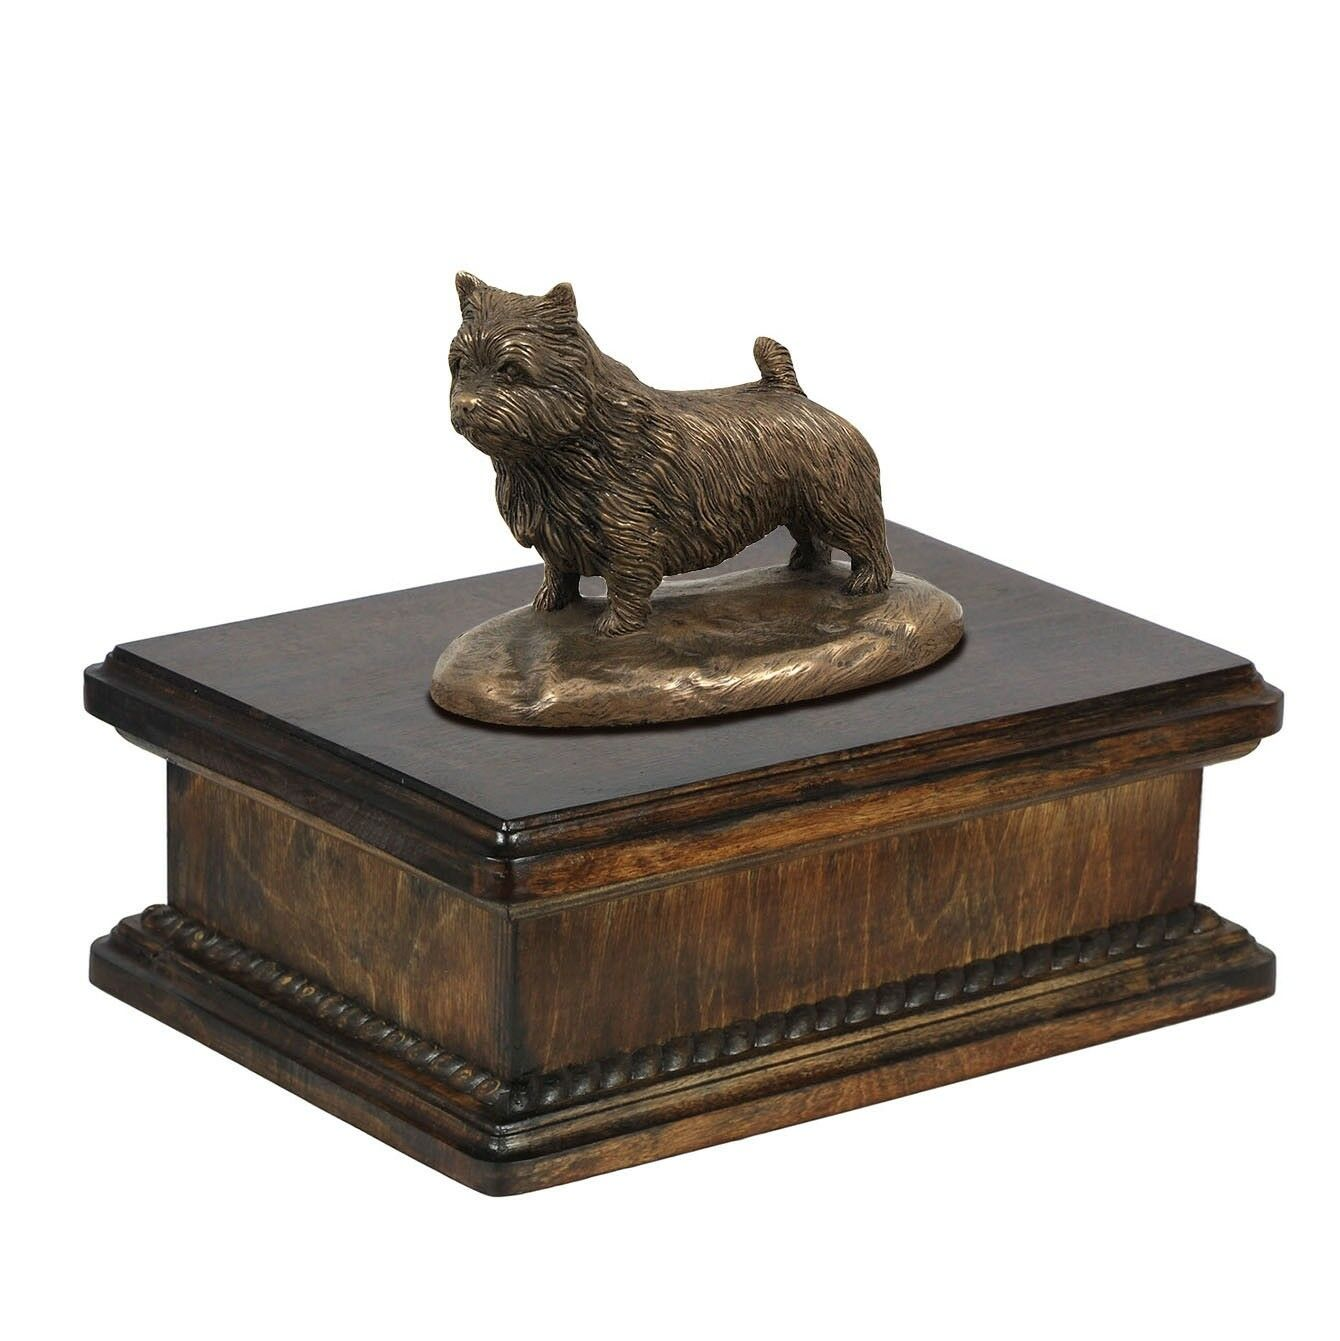 Norwich Terrier  exclusive urn with dog statue, High Quality, Art Dog